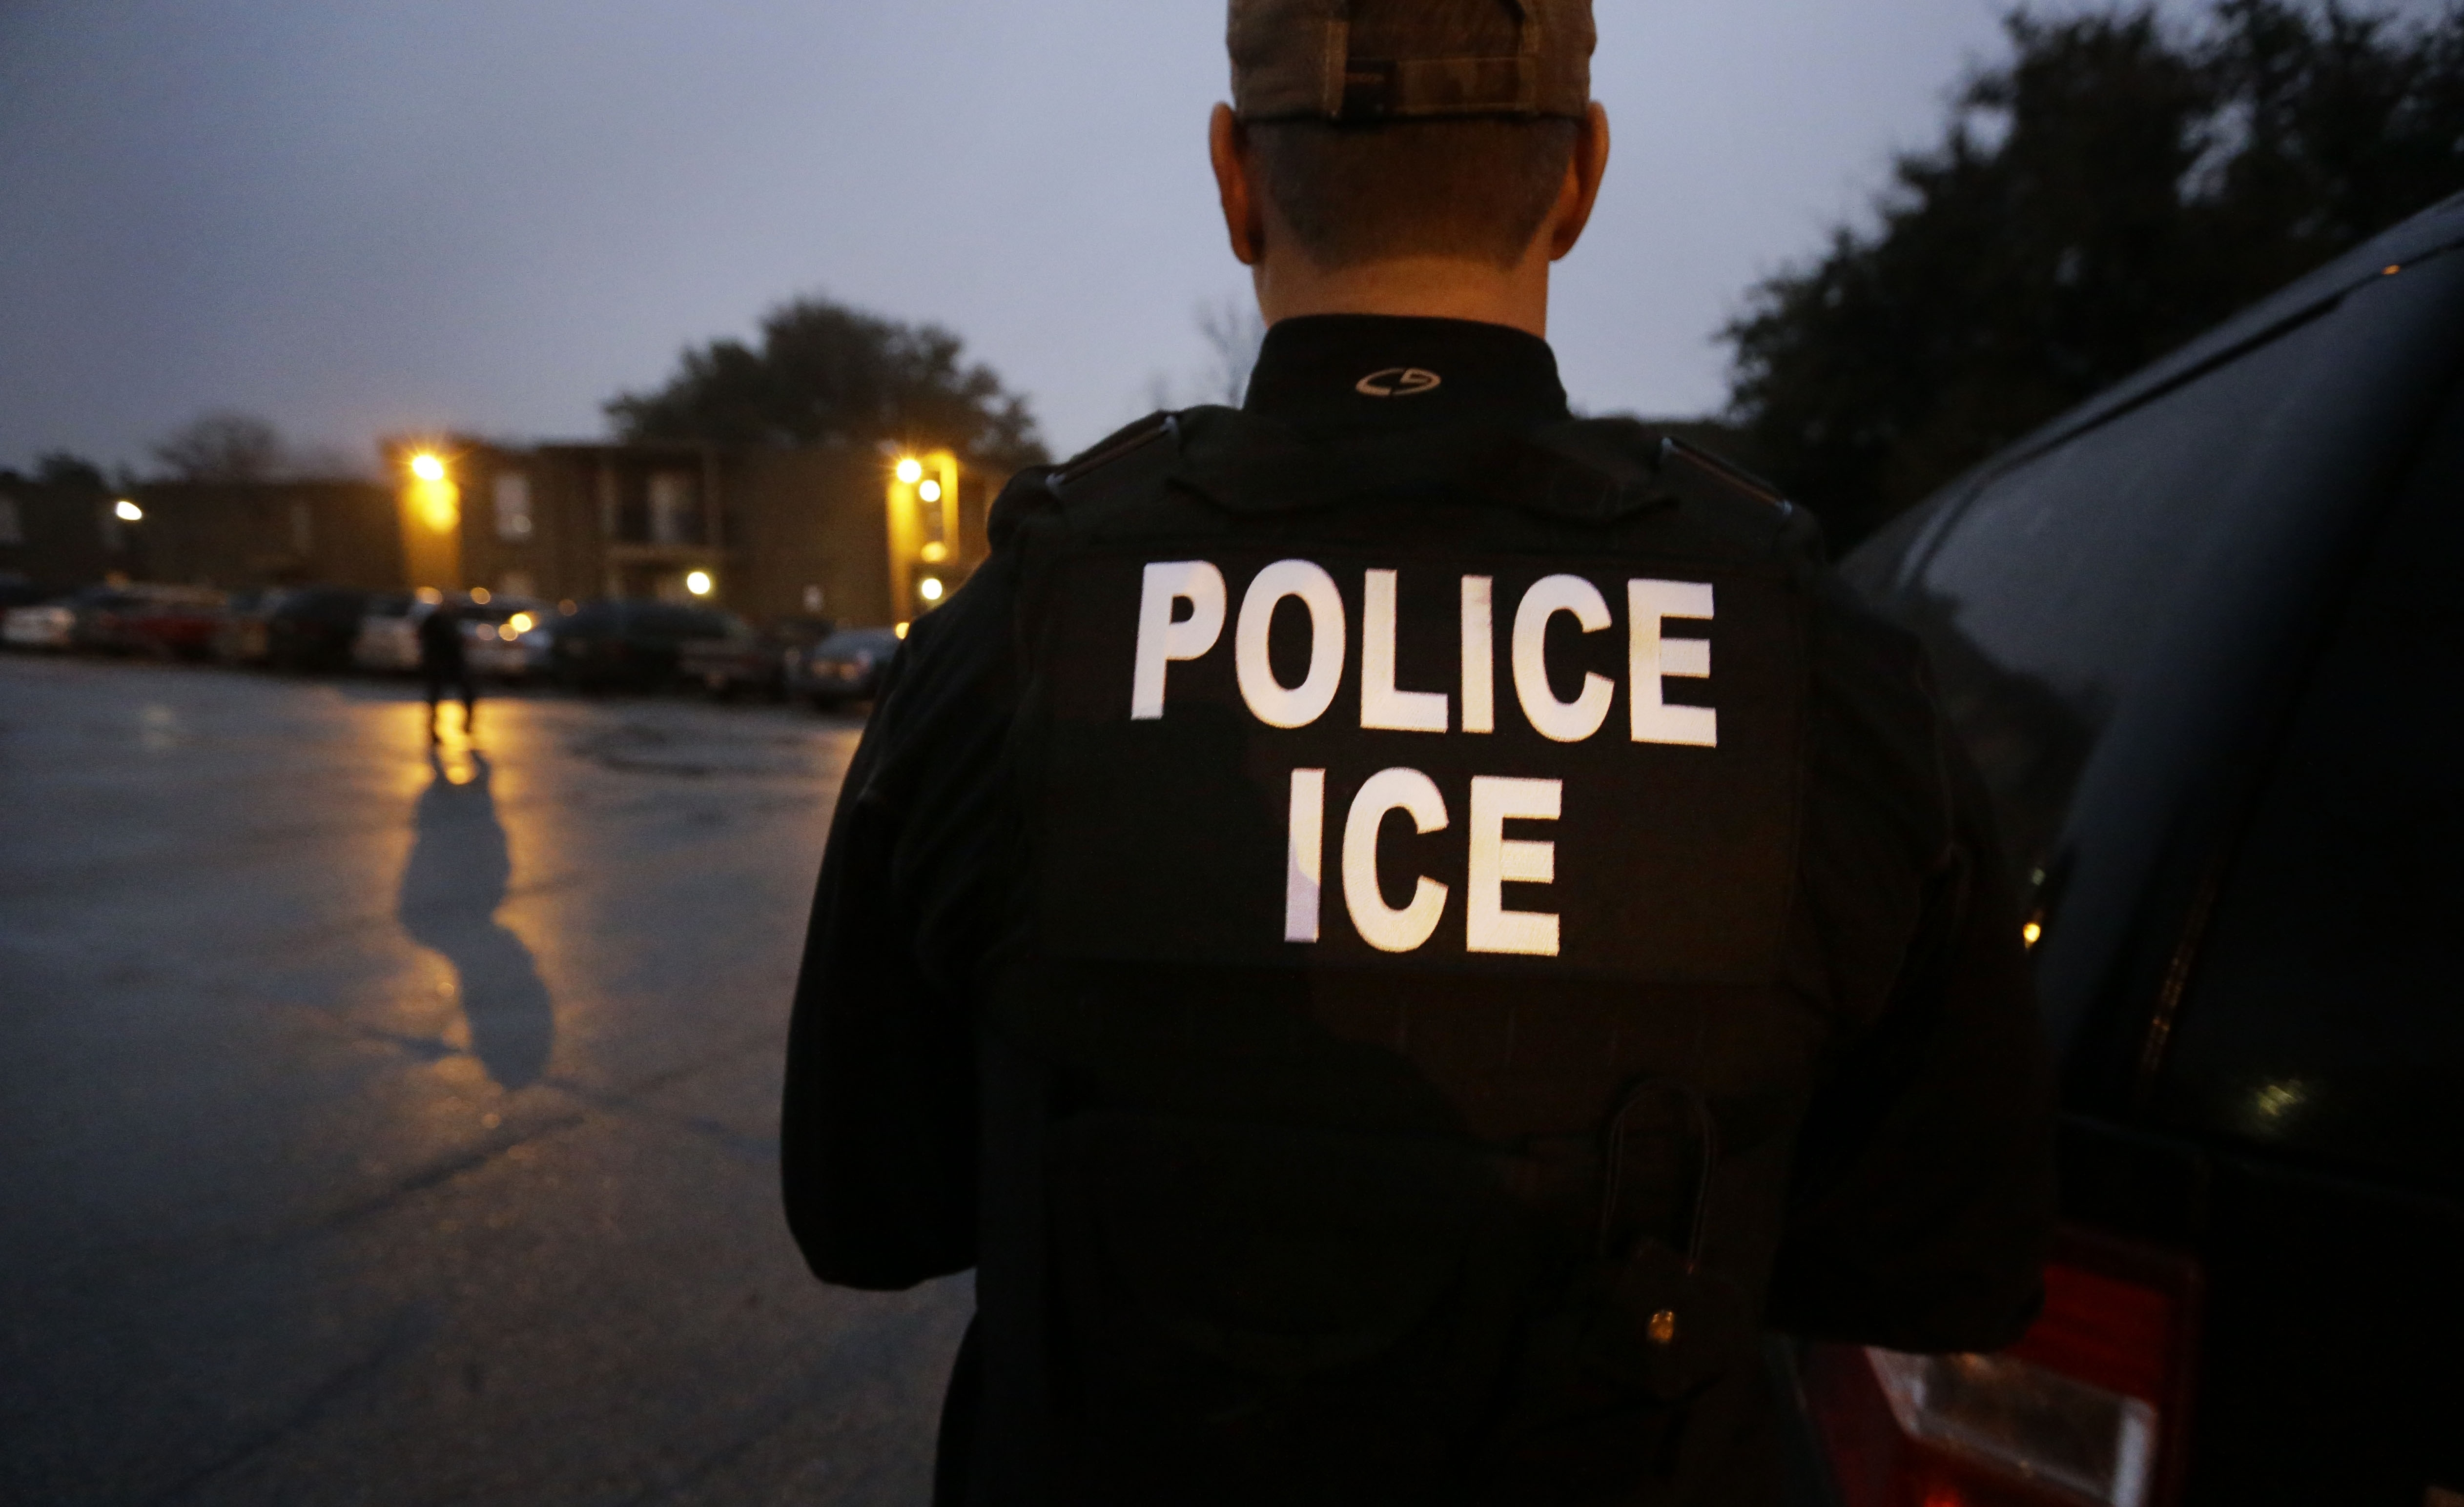 FILE - U.S. Immigration and Customs Enforcement (ICE) agents enter an apartment complex looking for a specific undocumented immigrant convicted of a felony during an early morning operation in Dallas, Texas, March 6, 2015.